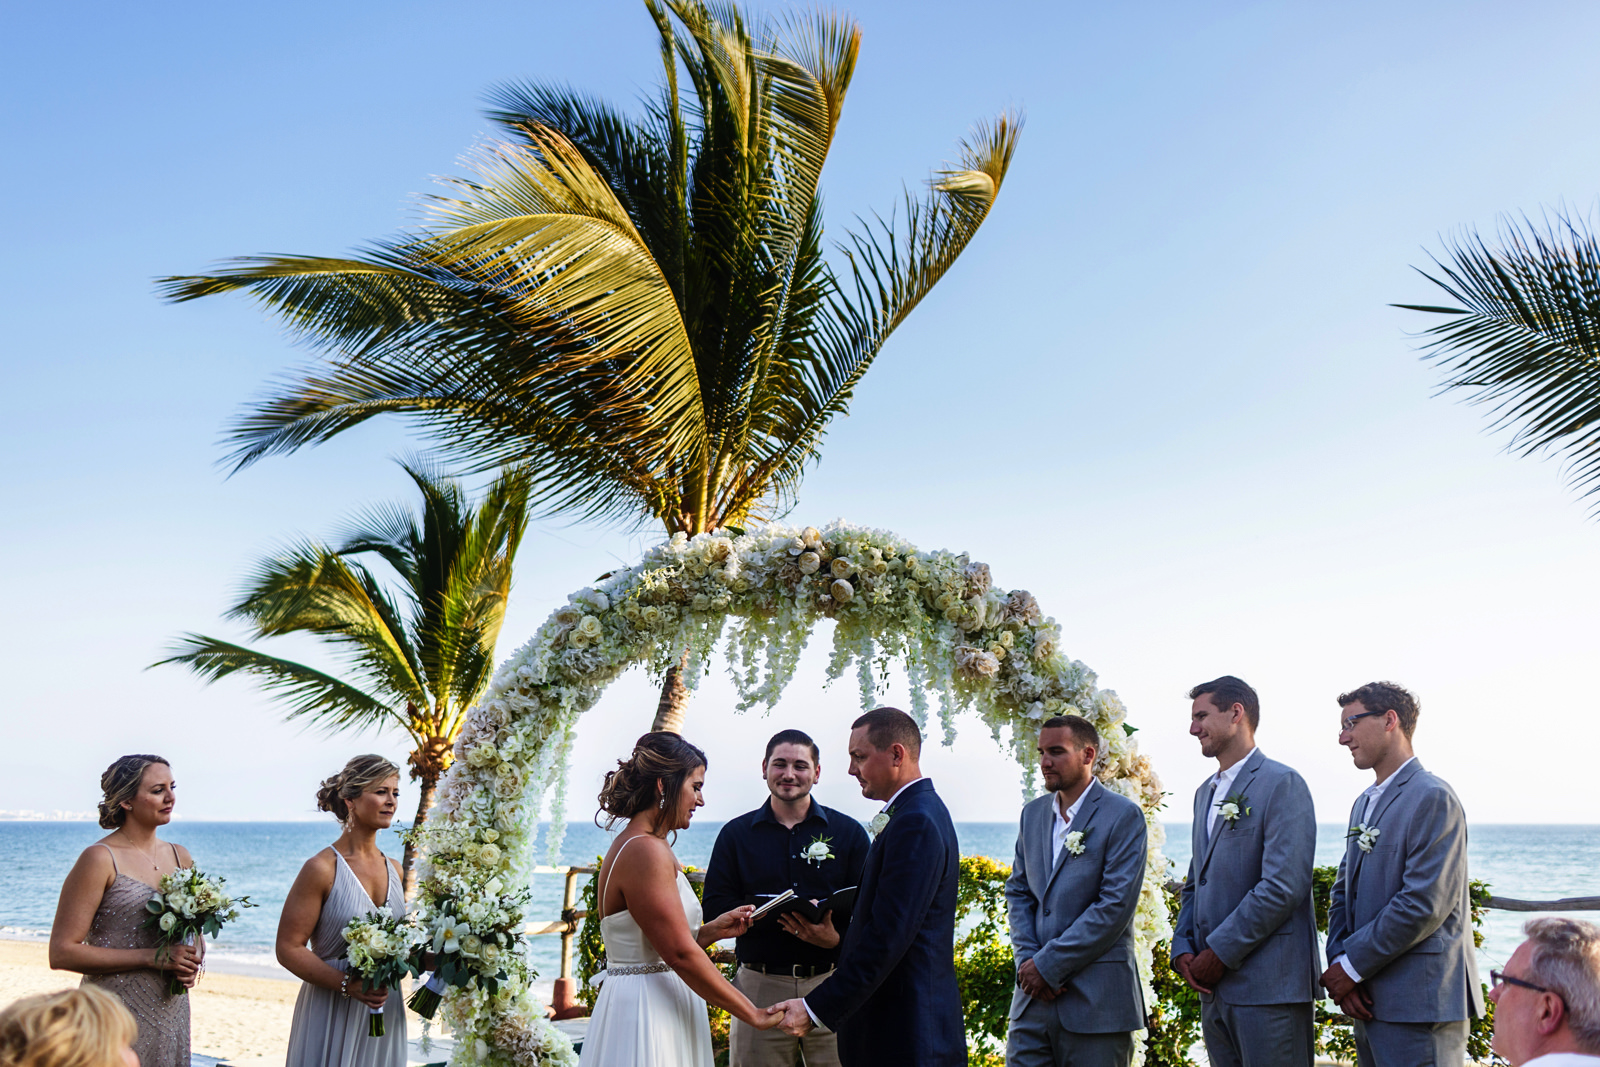 Bride reads her vows during the wedding ceremony with the ocean in the background